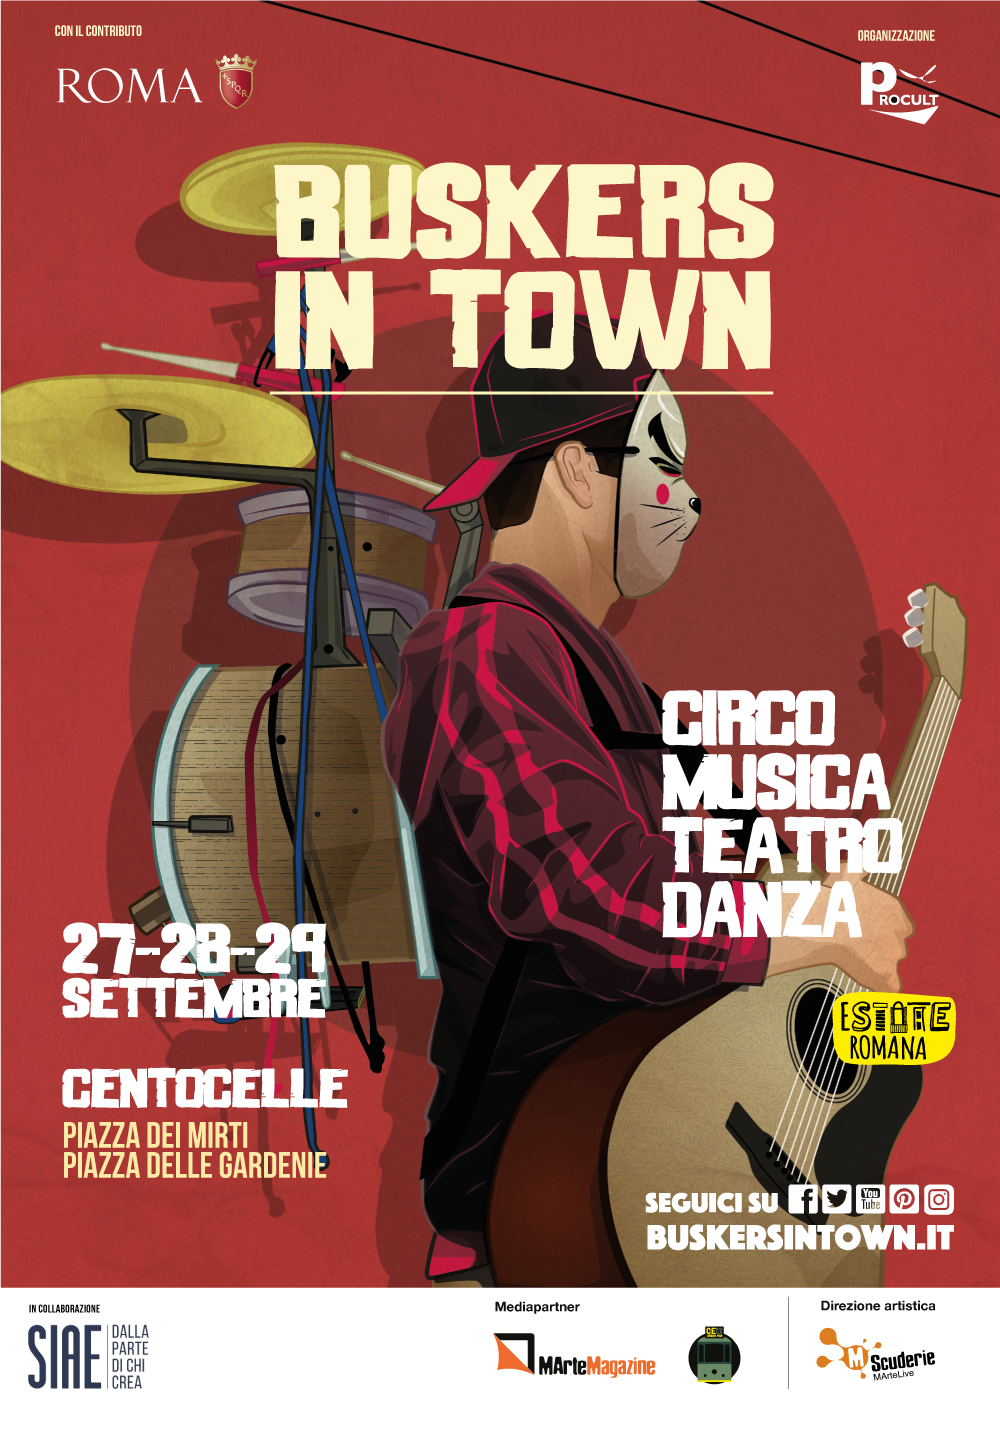 Buskers-In-town-Roma.jpg